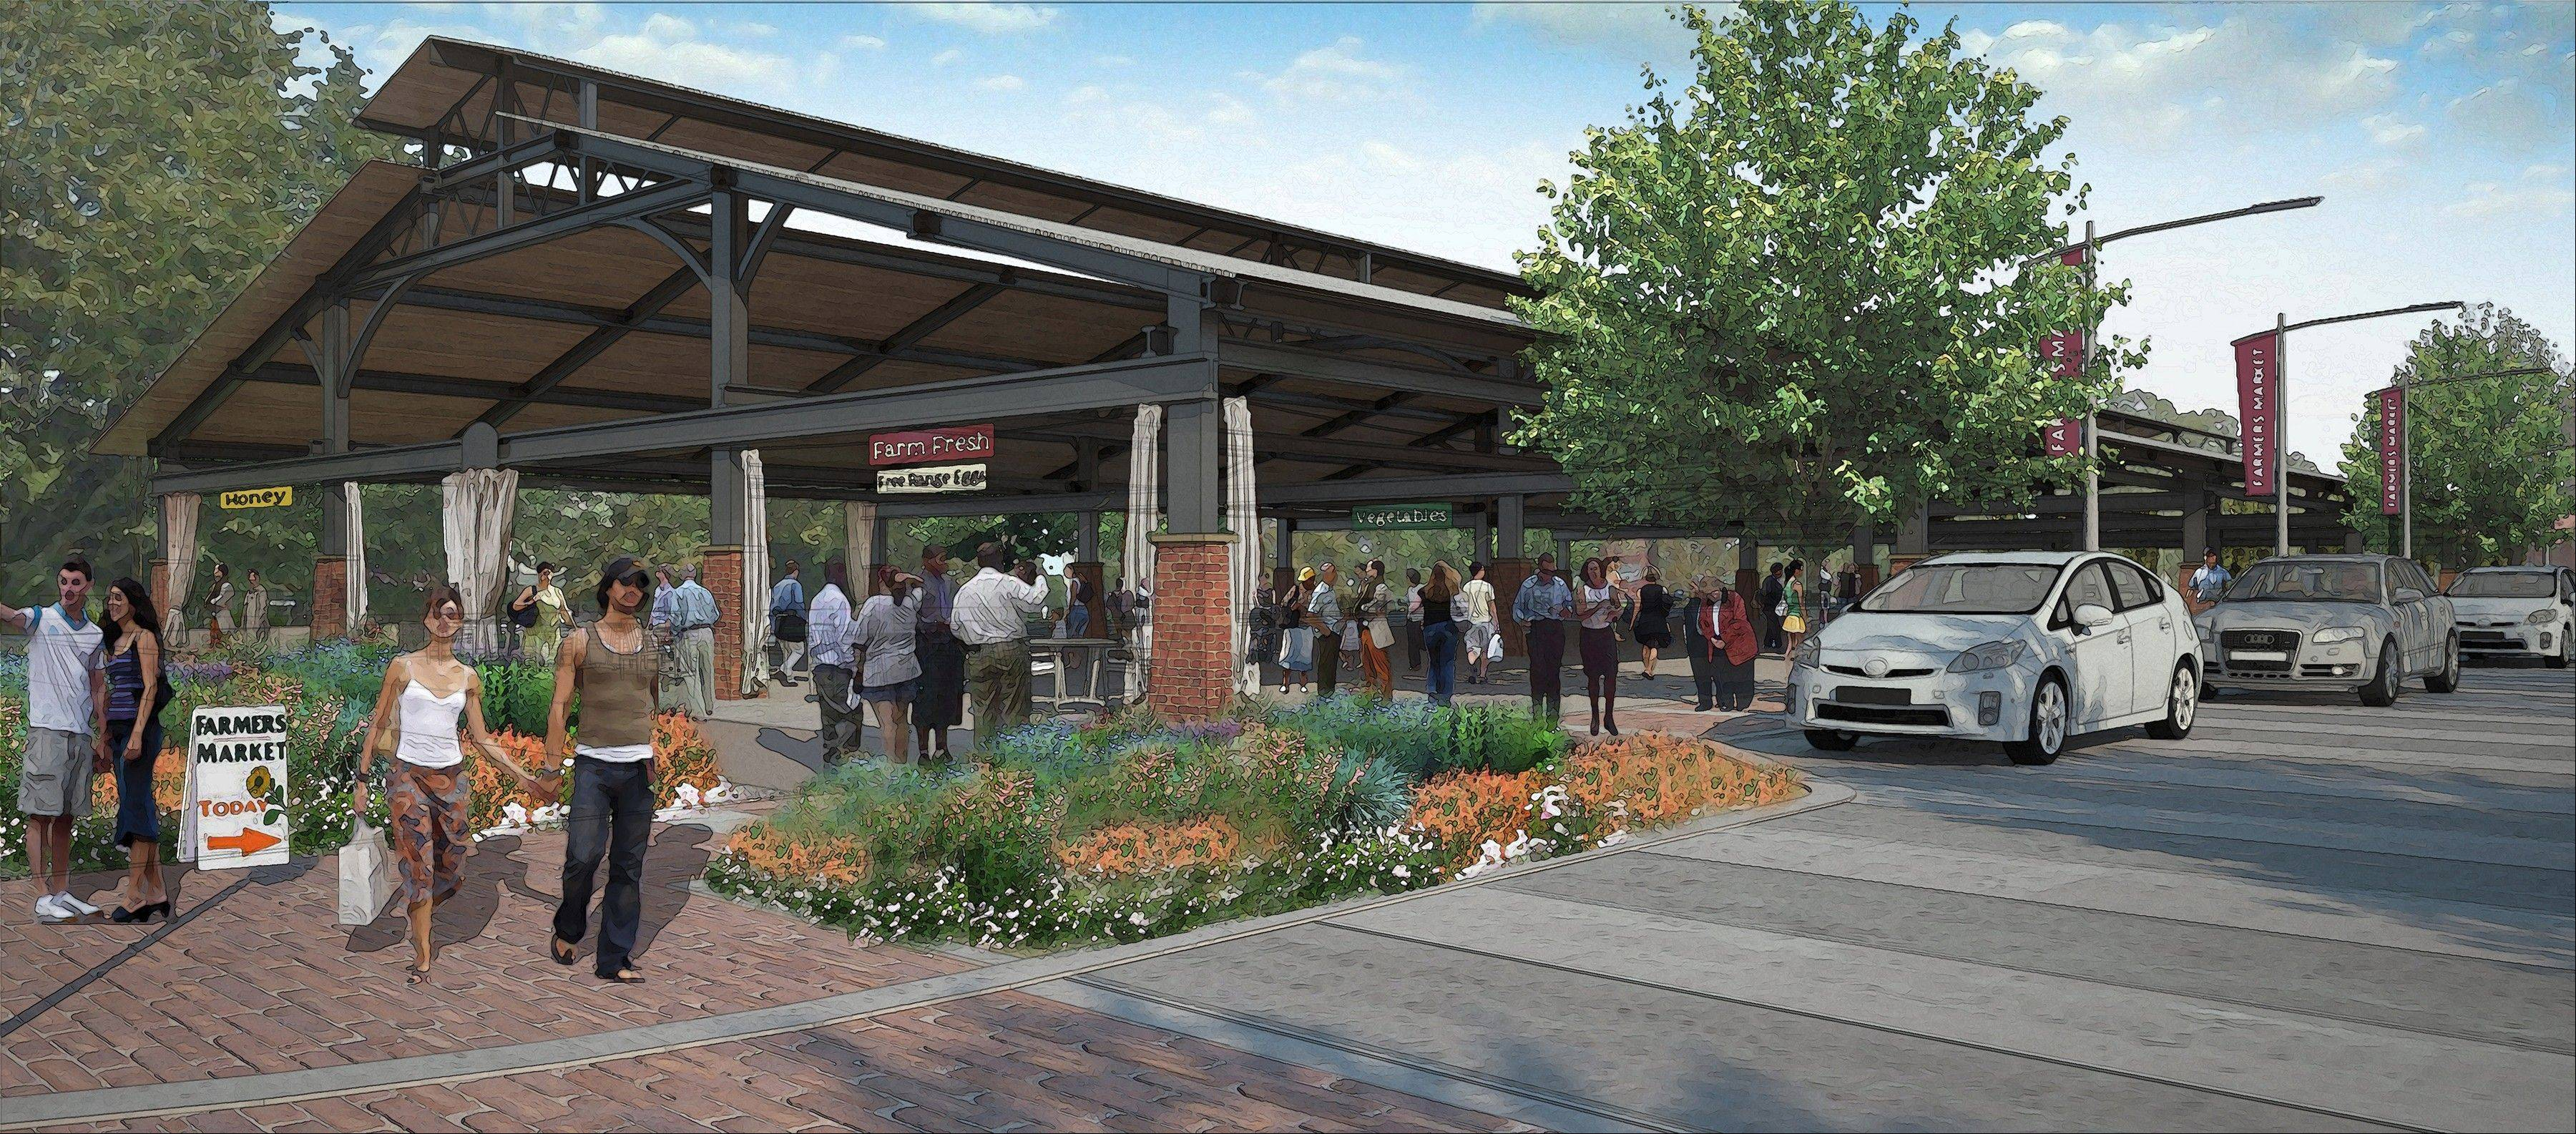 This artist's rendering shows the permanent French Market structure proposed for downtown Wheaton.